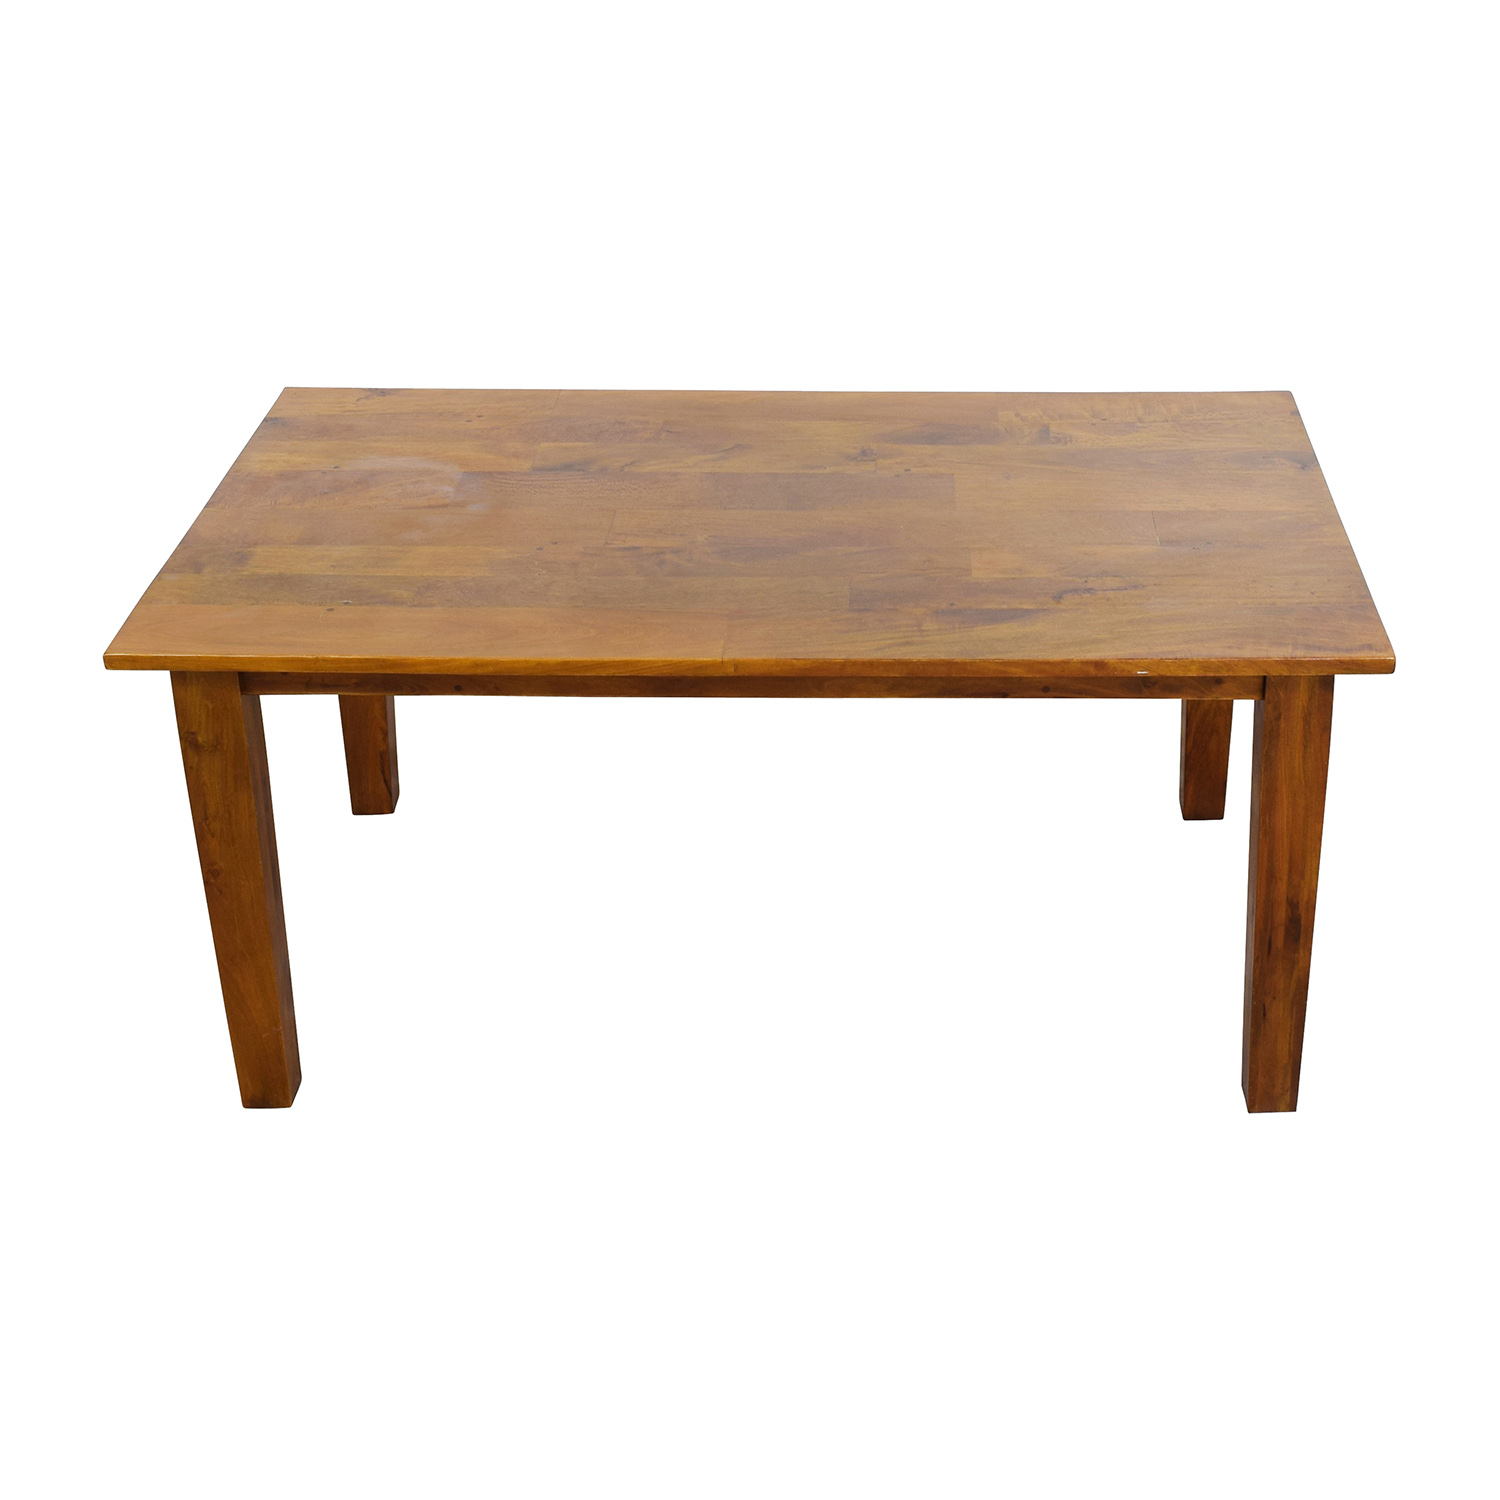 buy Crate & Barrel Solid Wood Rustic Dining Table Crate and Barrel Dinner Tables